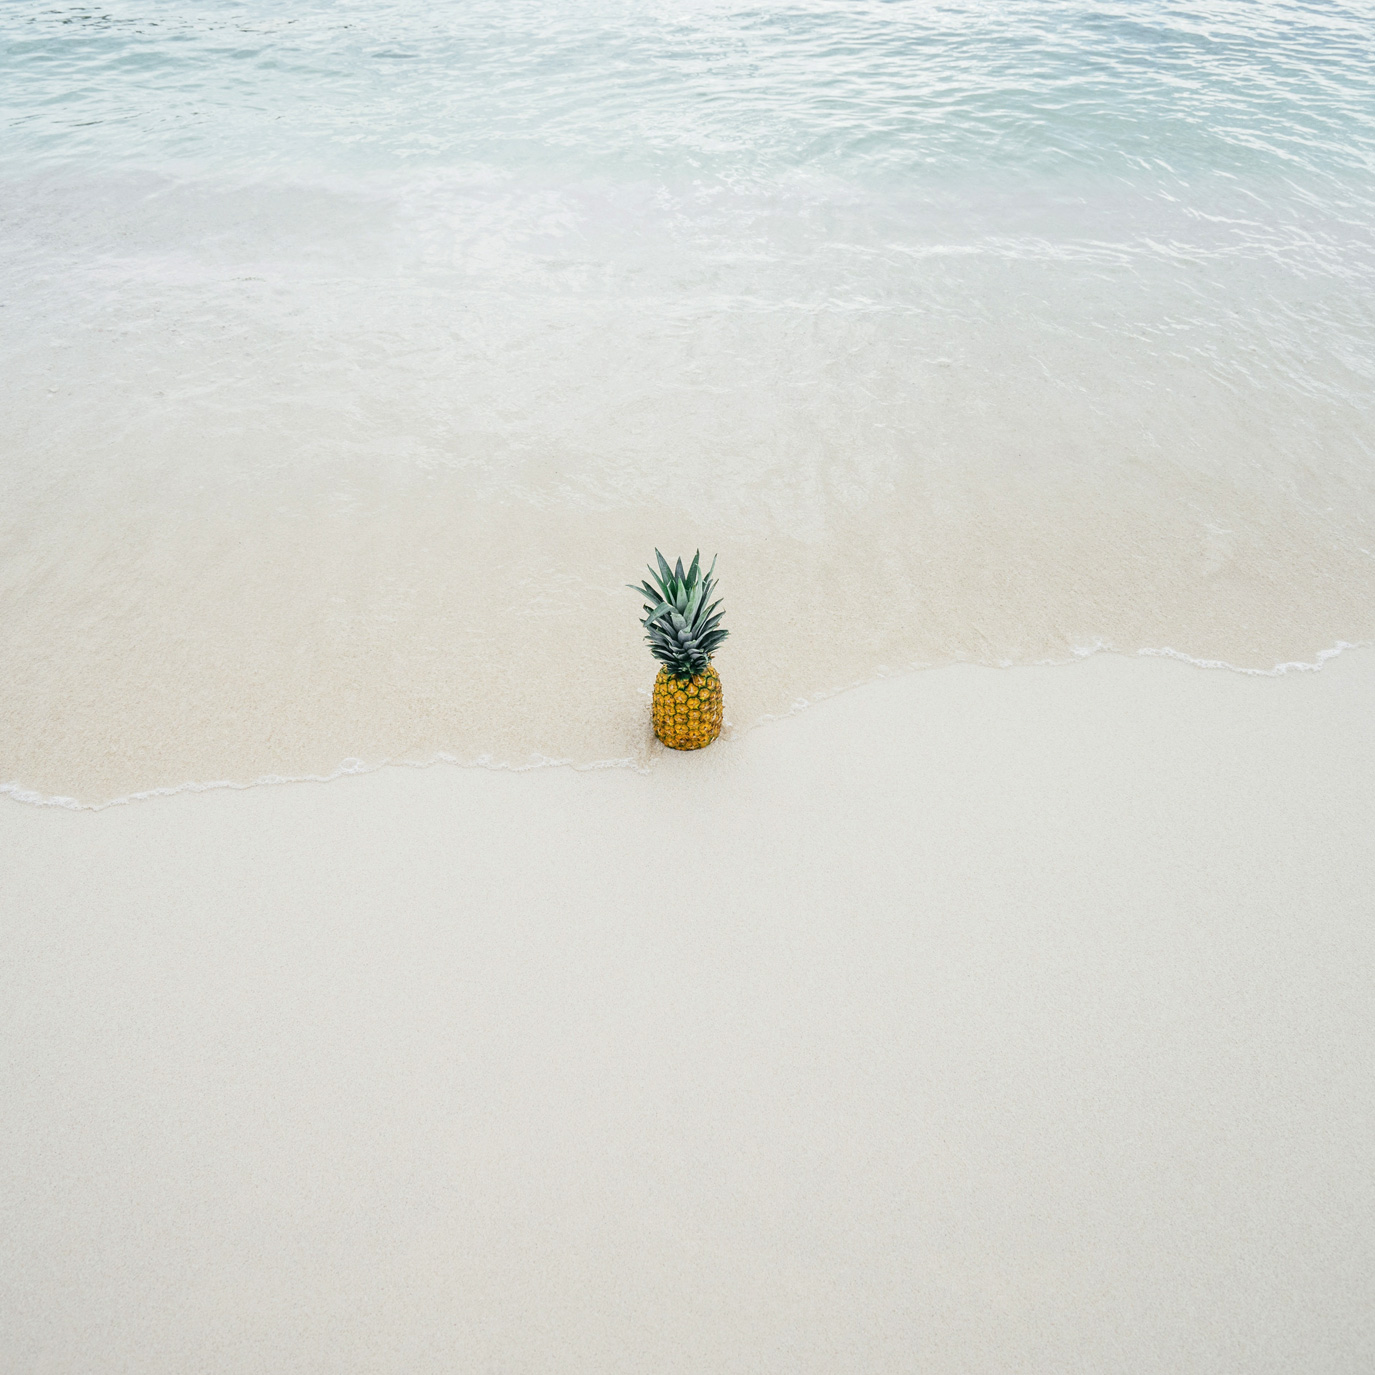 lonely pineapple searching for something